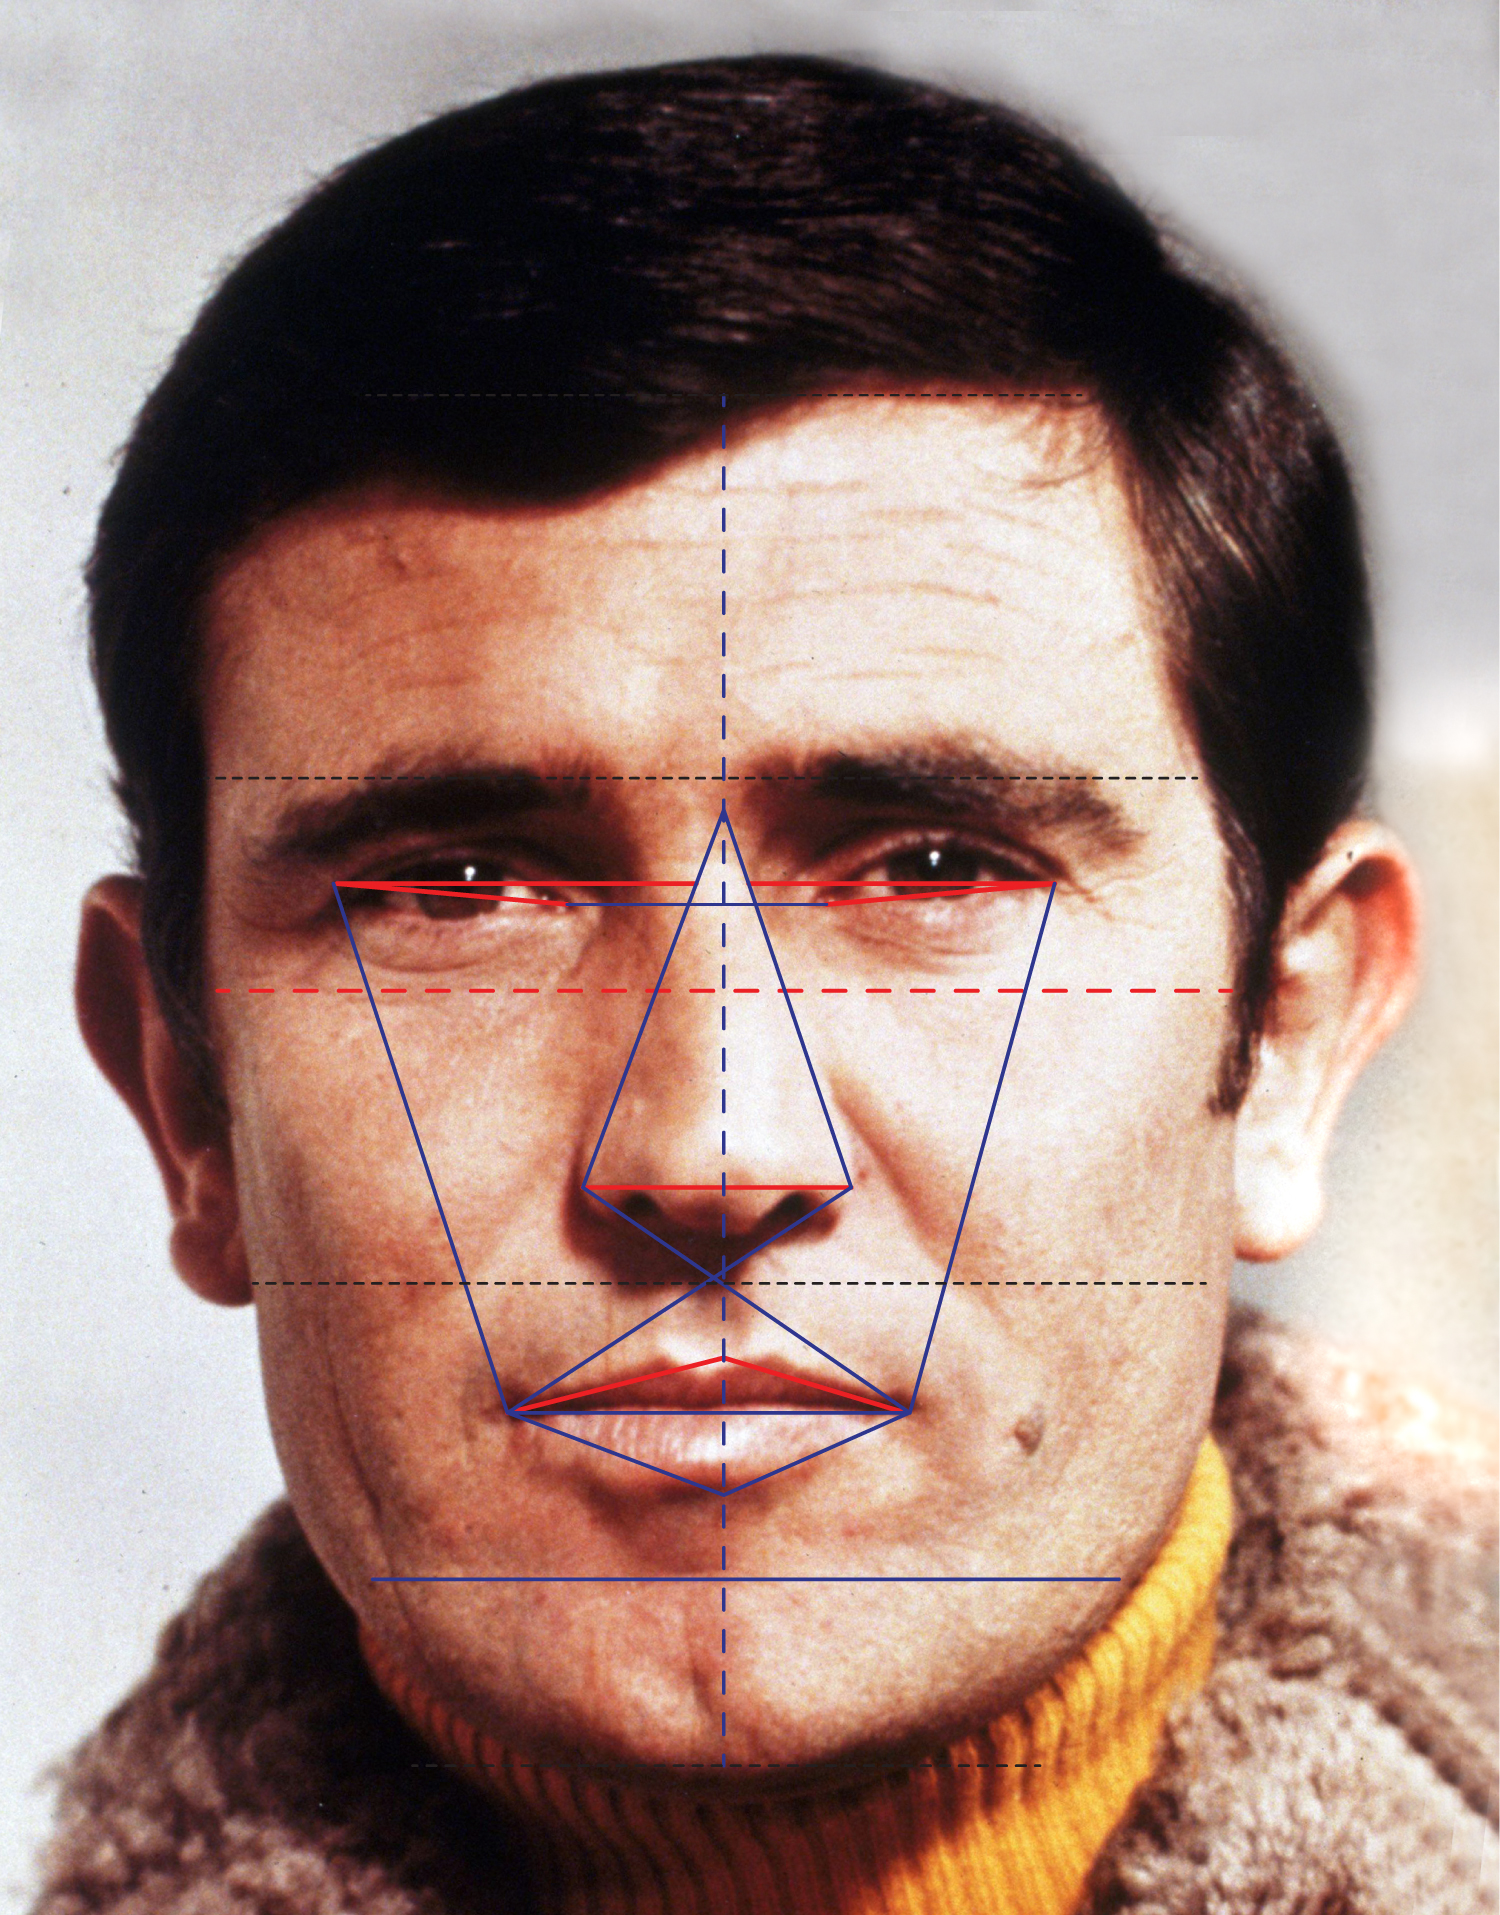 George Lazenby as James Bond and the golden ratio.